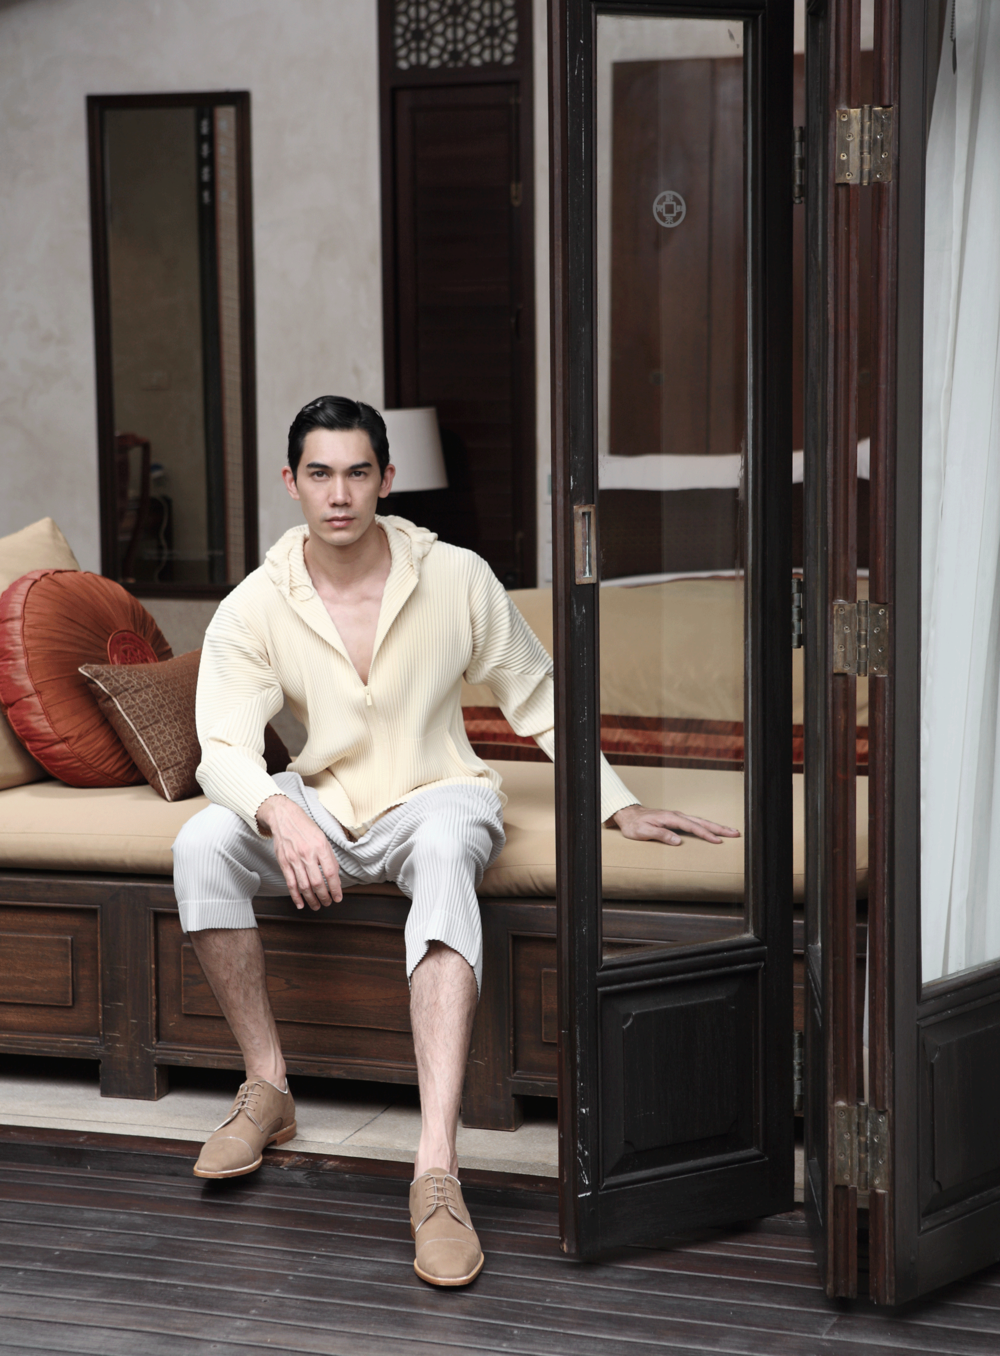 clothes :Homme Plisse Issey Miyake / shoes : Christian Louboutin